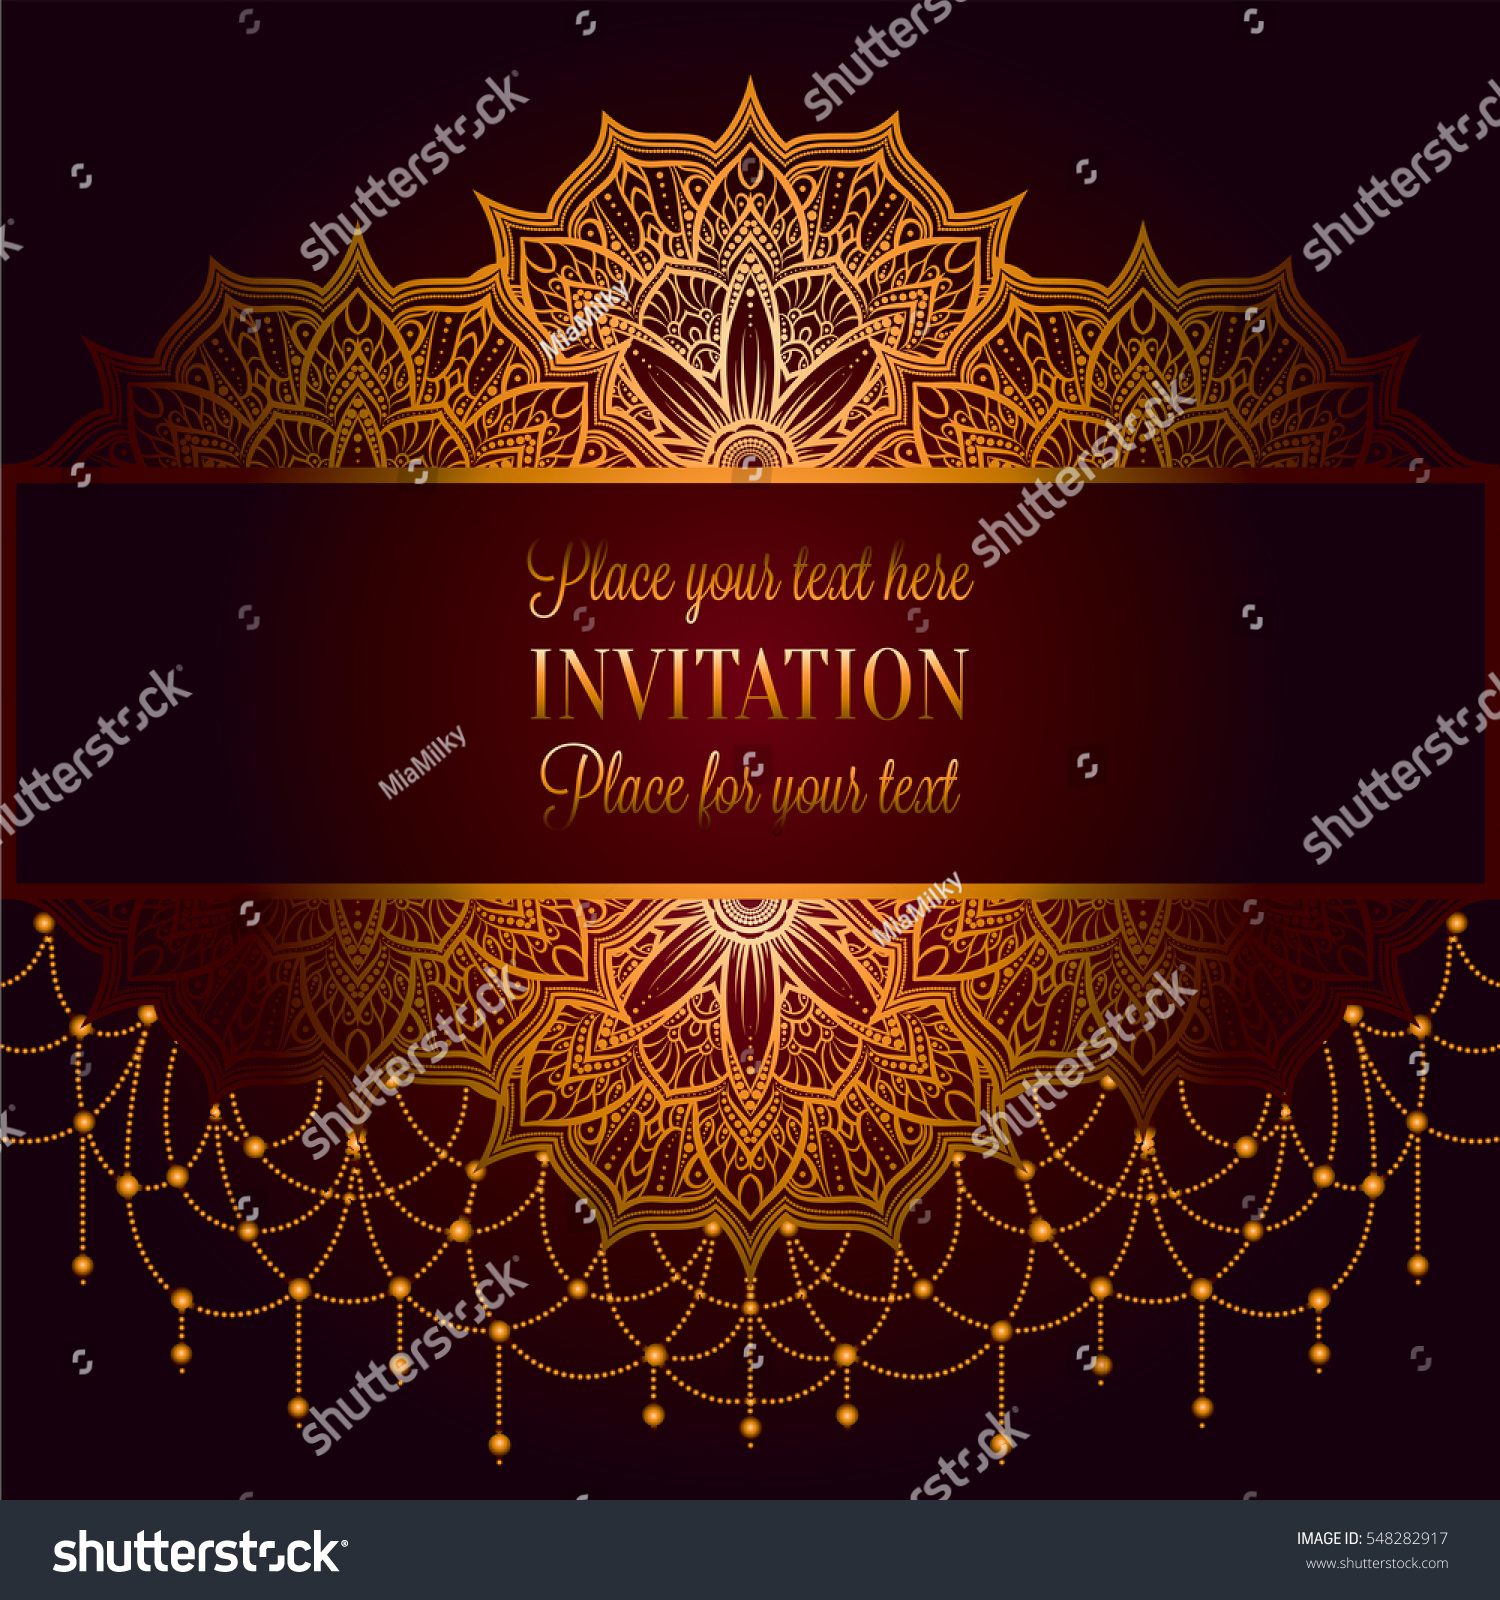 Wedding Invitation Card Intricate Mandala Beads Stock Vector ...